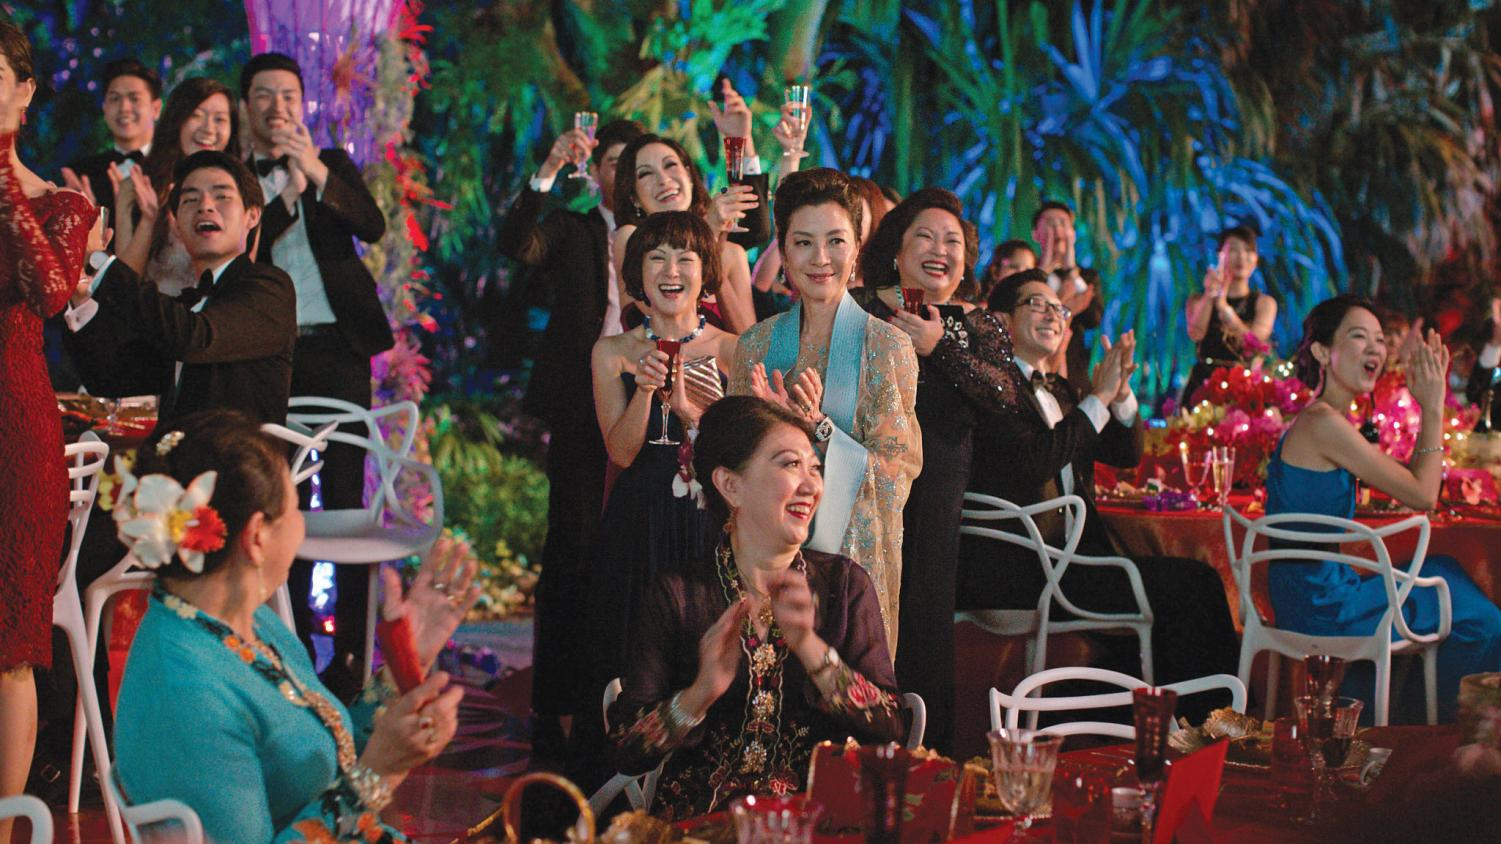 "ASIAN CELEBRATION. In ""Crazy Rich Asians"" based on Kevin Kwan's best-selling novel of the same name, Nick Young's mother, extended family and friends celebrate his friend's wedding in Singapore. ""Crazy Rich Asians,"" the first major film to feature an all-Asian cast since ""The Joy Luck Club,"" joins ""To All the Boys I've Loved Before"" and ""Searching"" to represent Asian-Americans in popular culture."